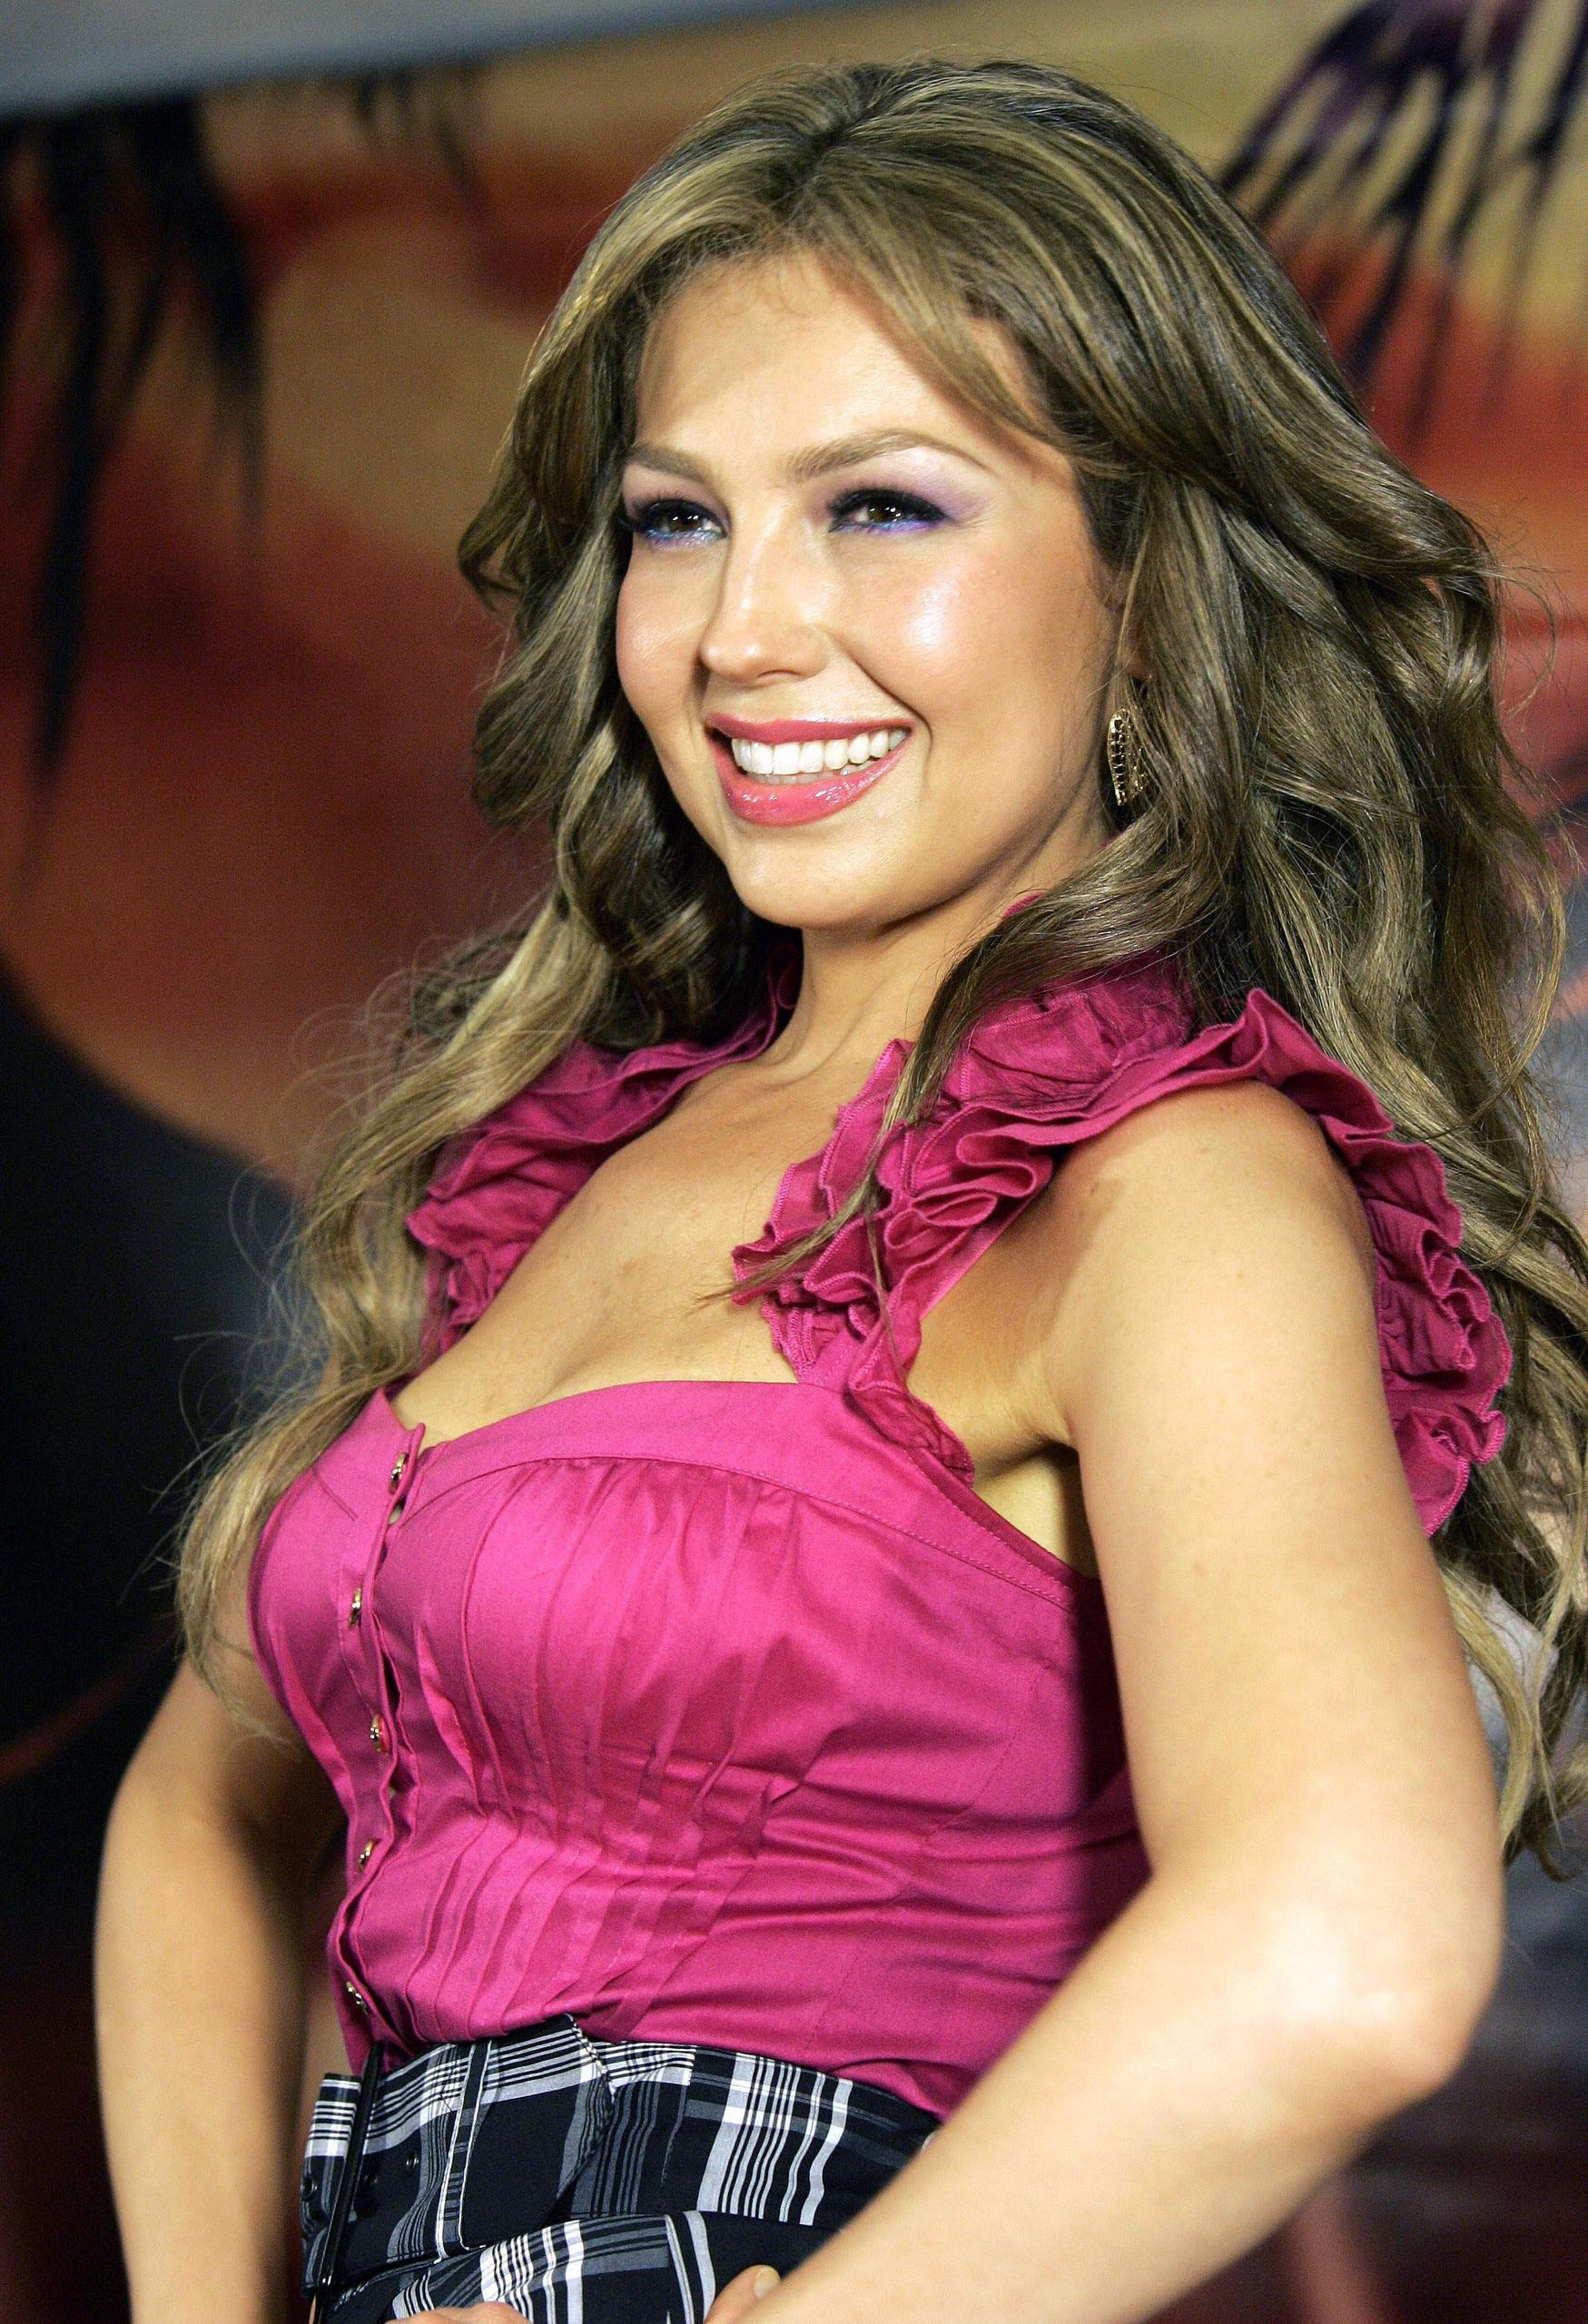 https://i1.wp.com/images2.fanpop.com/images/photos/6700000/Thalia-thalia-6708901-1749-2560.jpg